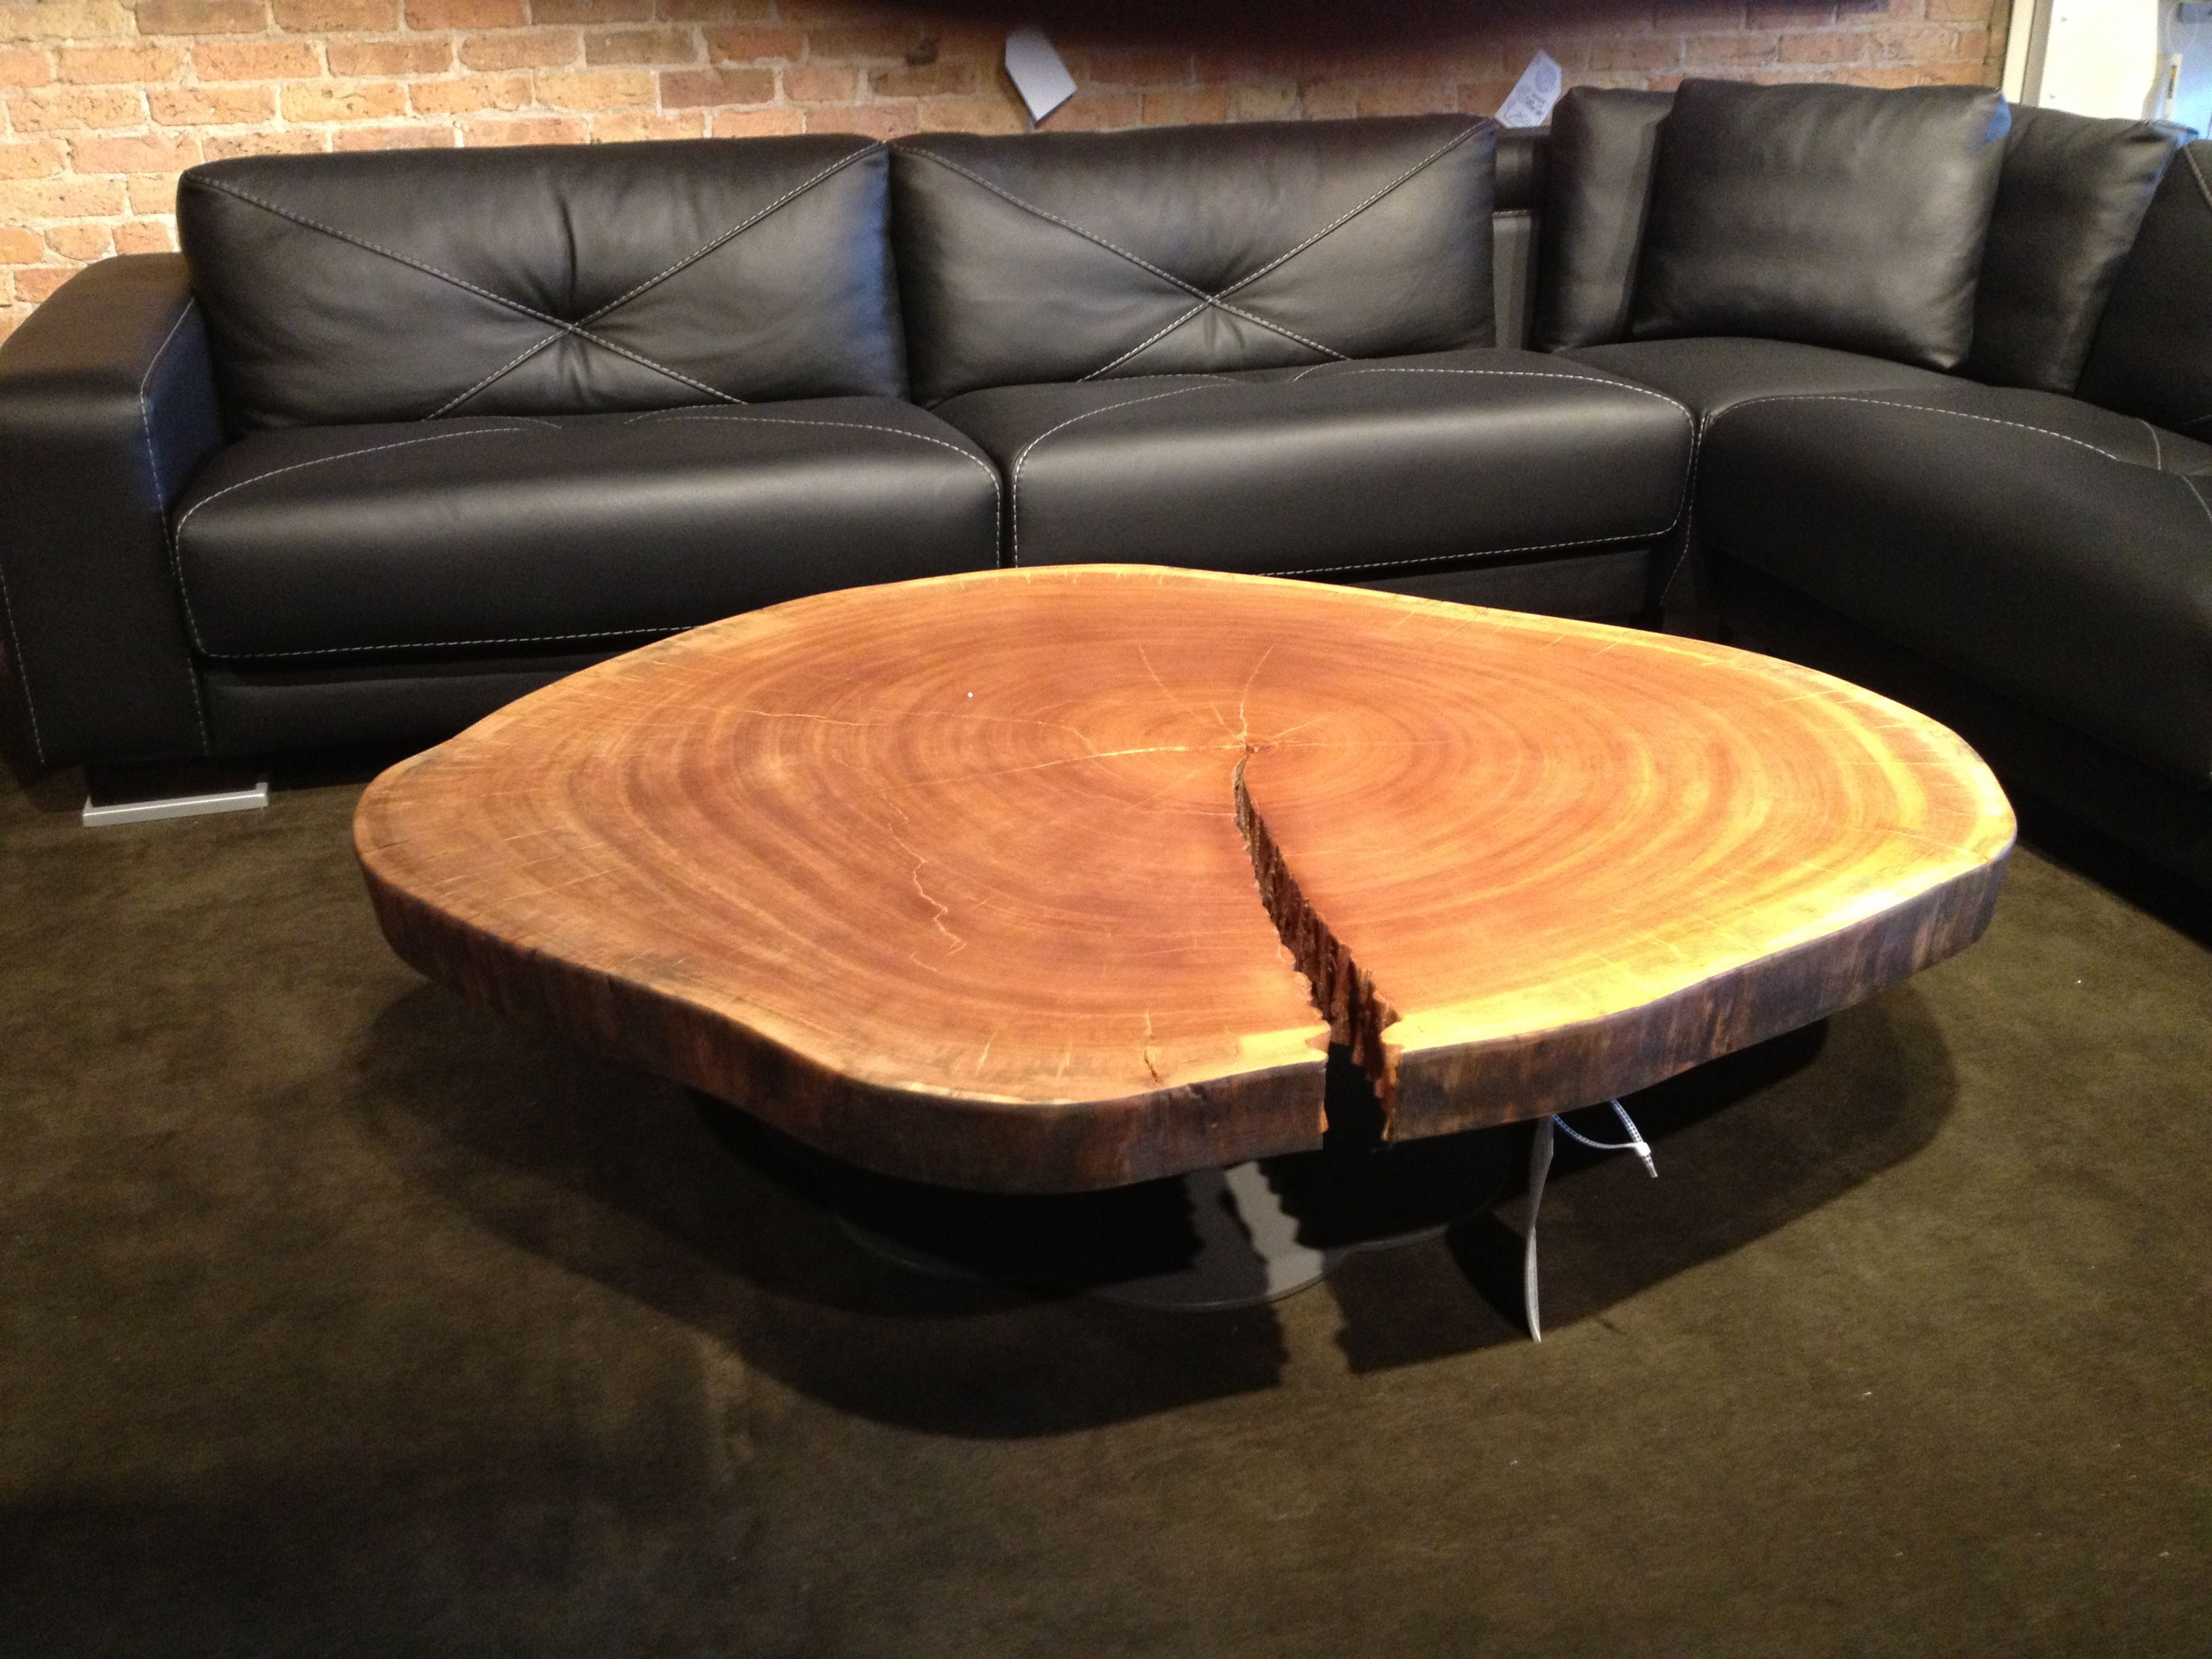 Natural Wood Coffee Table | Ski Lodge - Decor | Pinterest